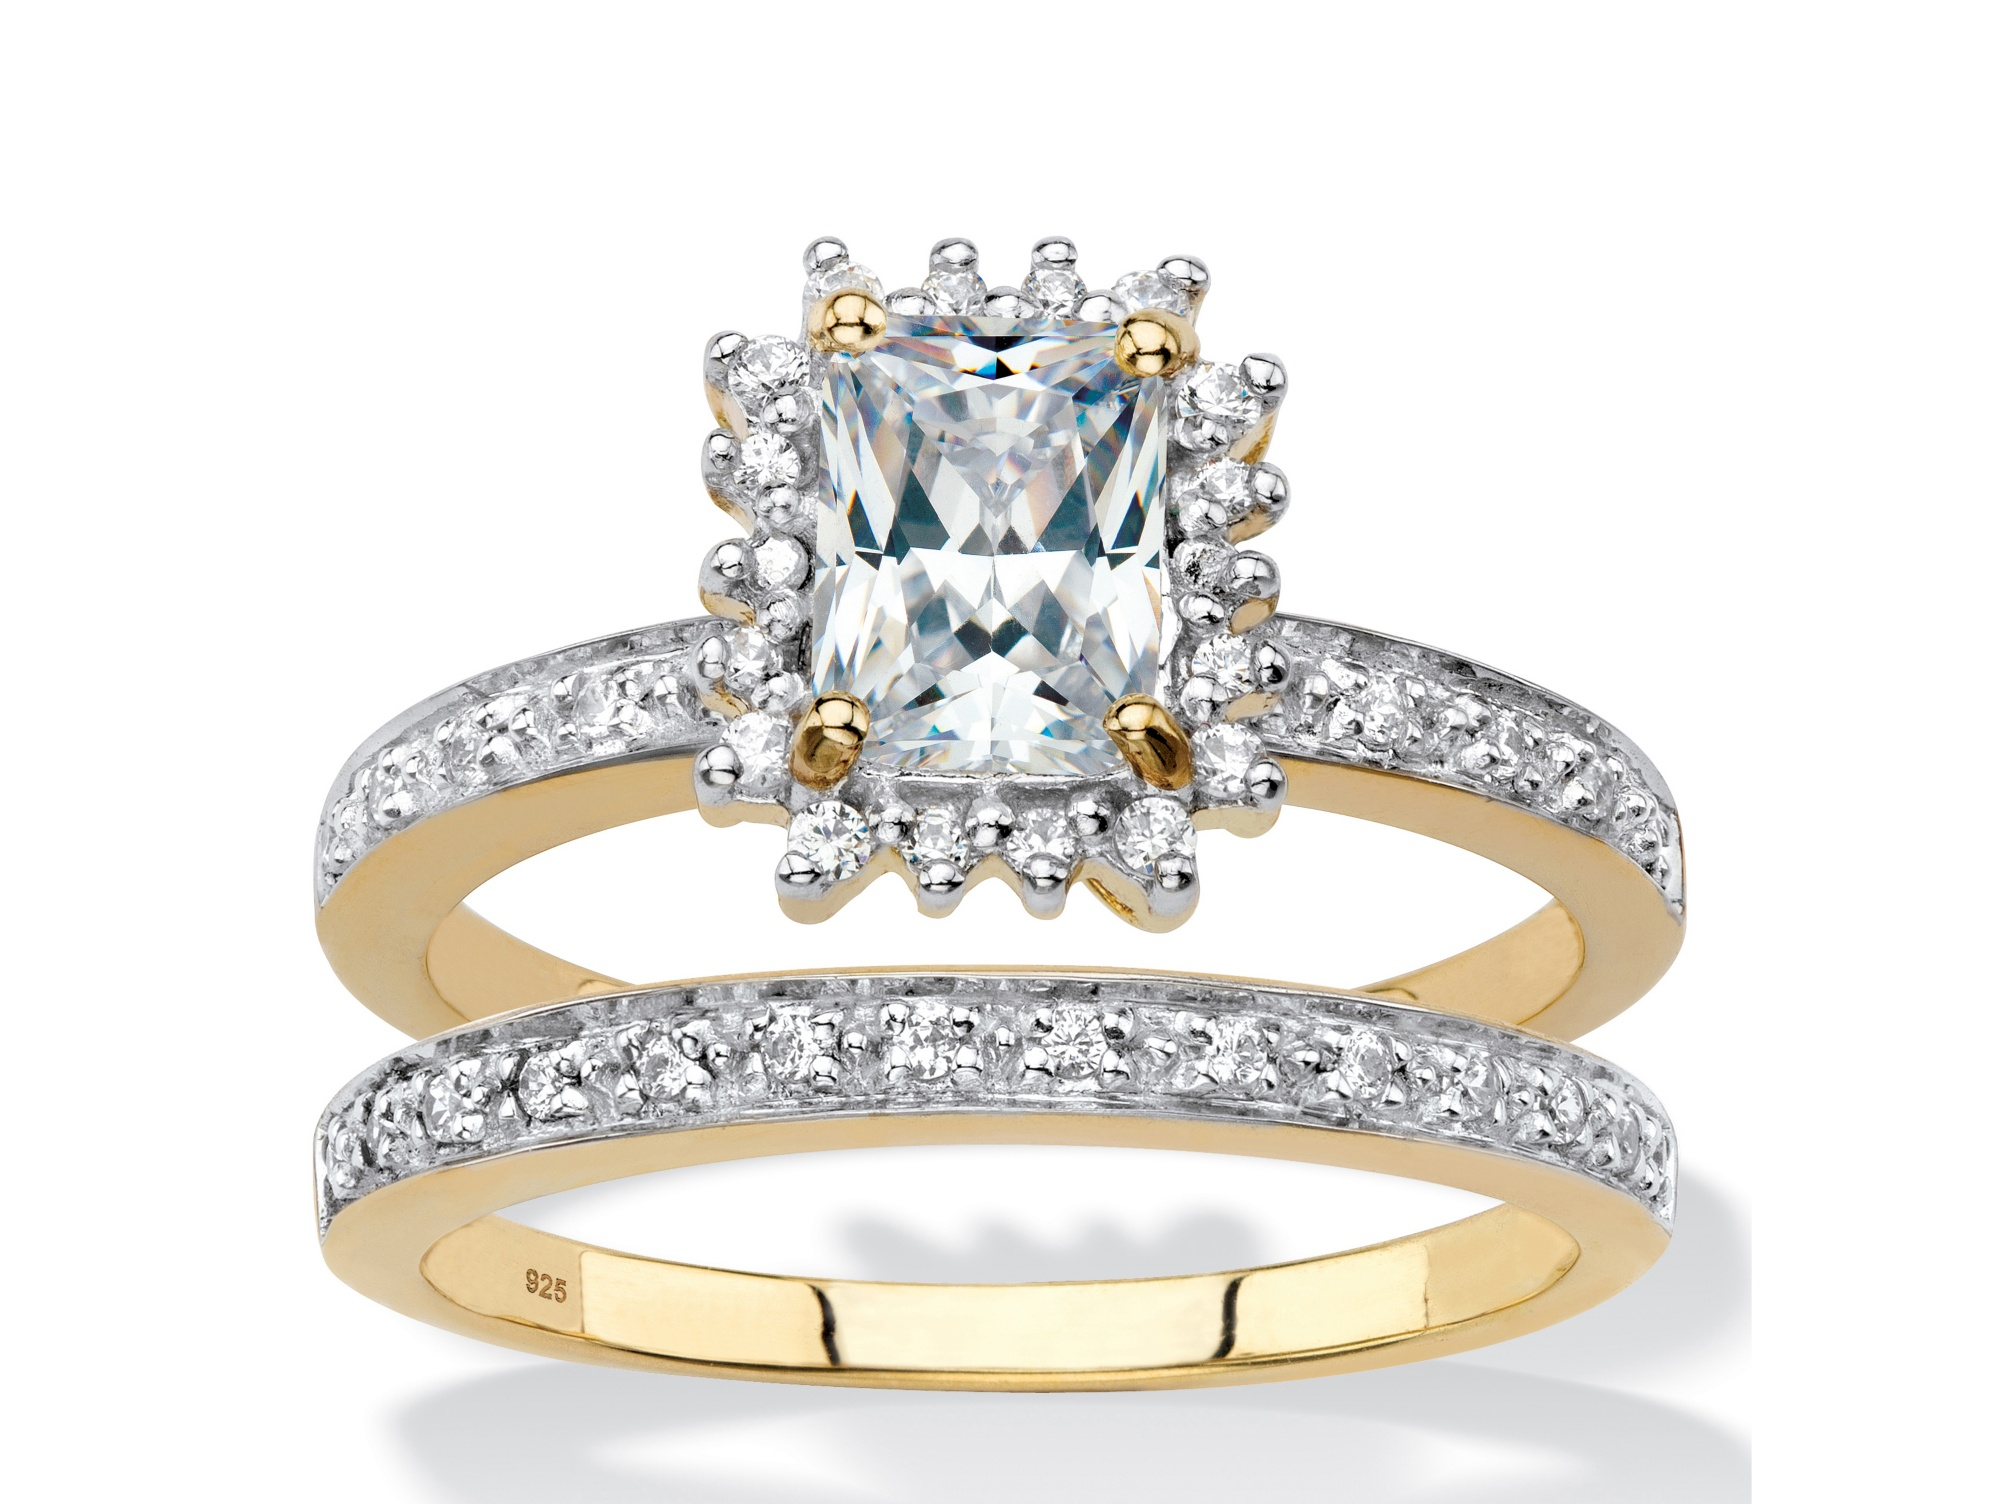 Emerald-Cut Created White Sapphire and Diamond 2-Piece Halo Wedding Ring Set 1.67 TCW in 18k Gold over Sterling Silver by PalmBeach Jewelry